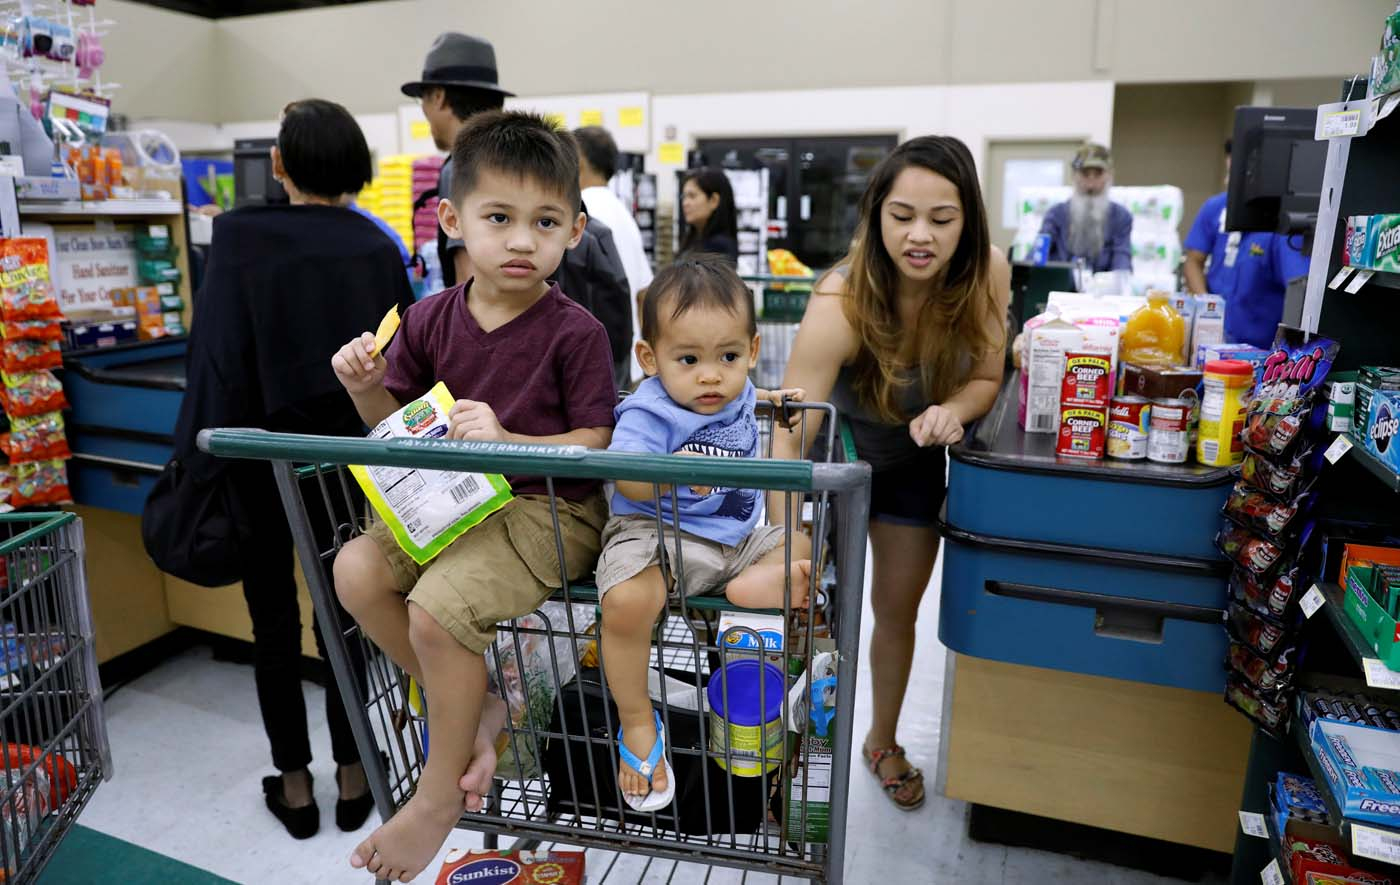 Children ride in a shopping cart, as residents shop for food supplies, at a grocery store in Dededo, Guam, a U.S. Pacific Territory, August 12, 2017. REUTERS/Erik De Castro